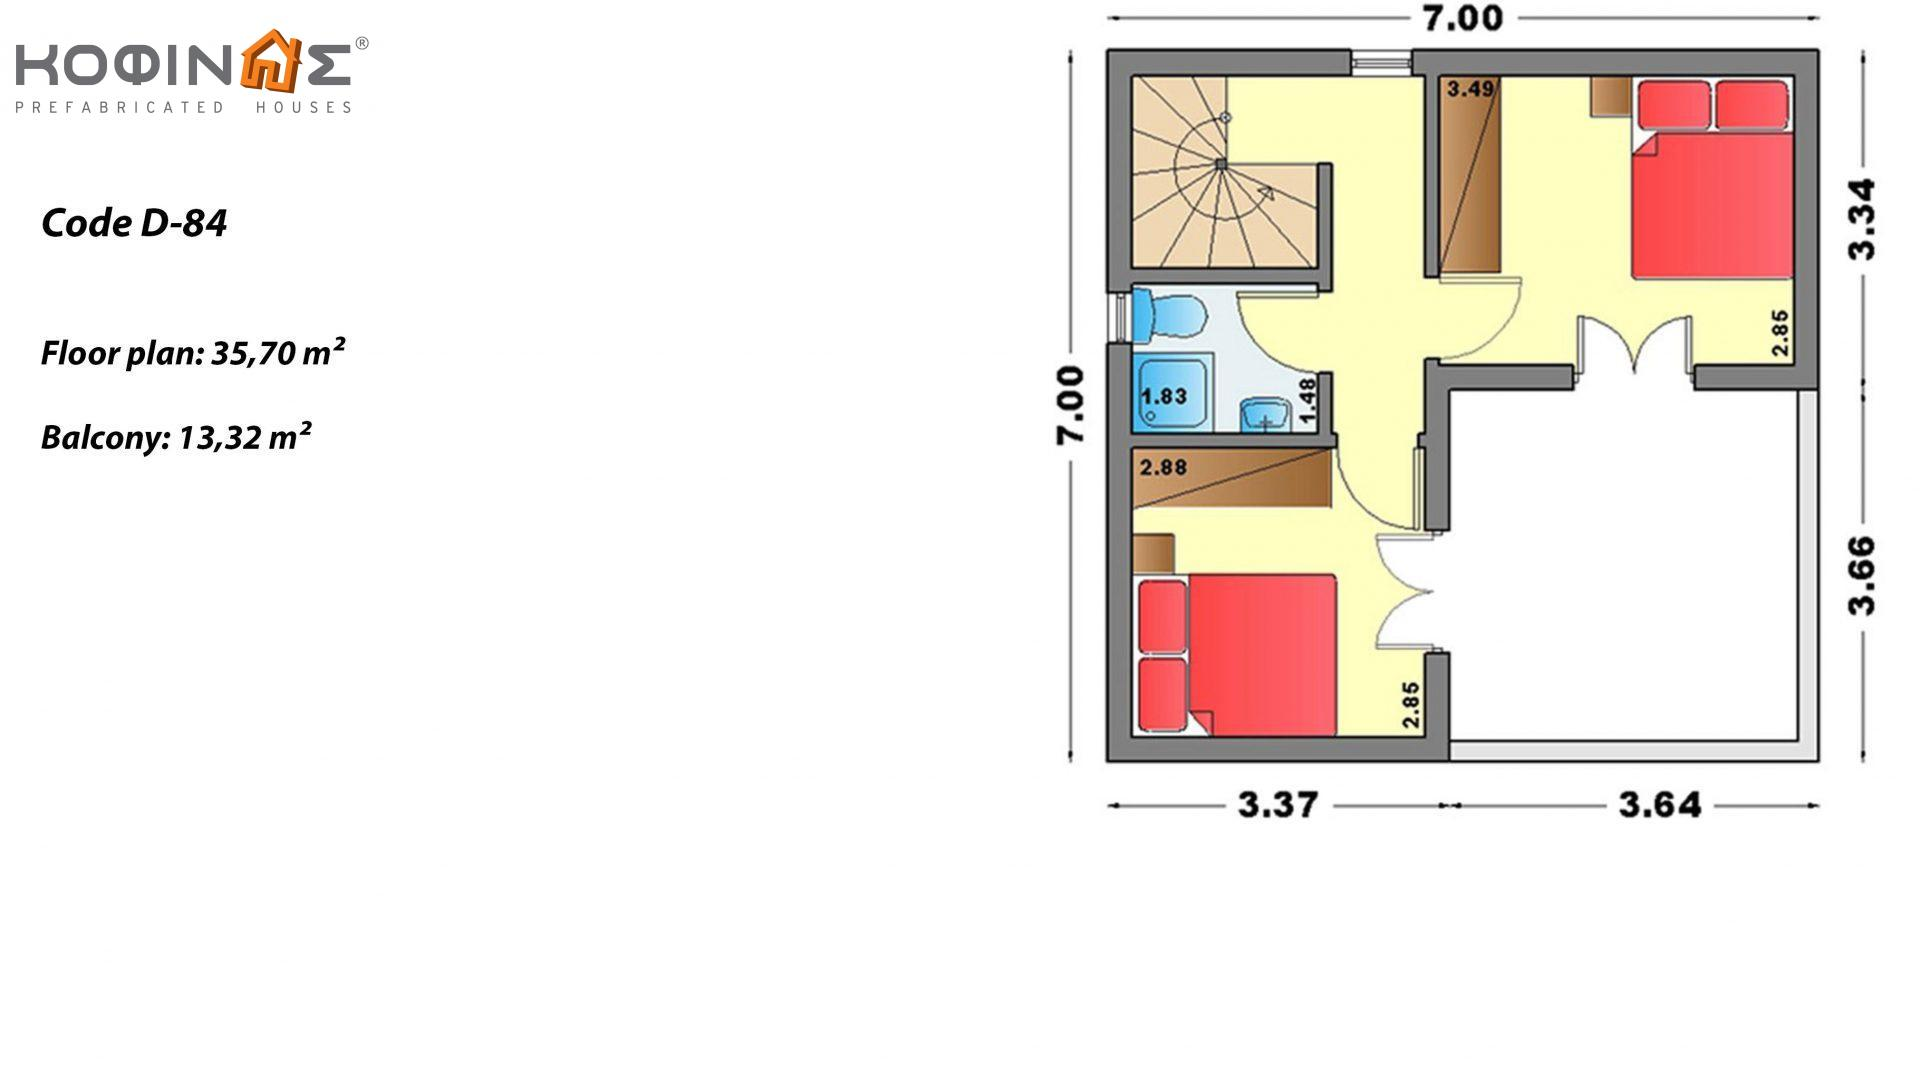 2-story house D-84, total surface of 84,70 m² ,roofed areas 18.90 m²,balconies 13.32 m²